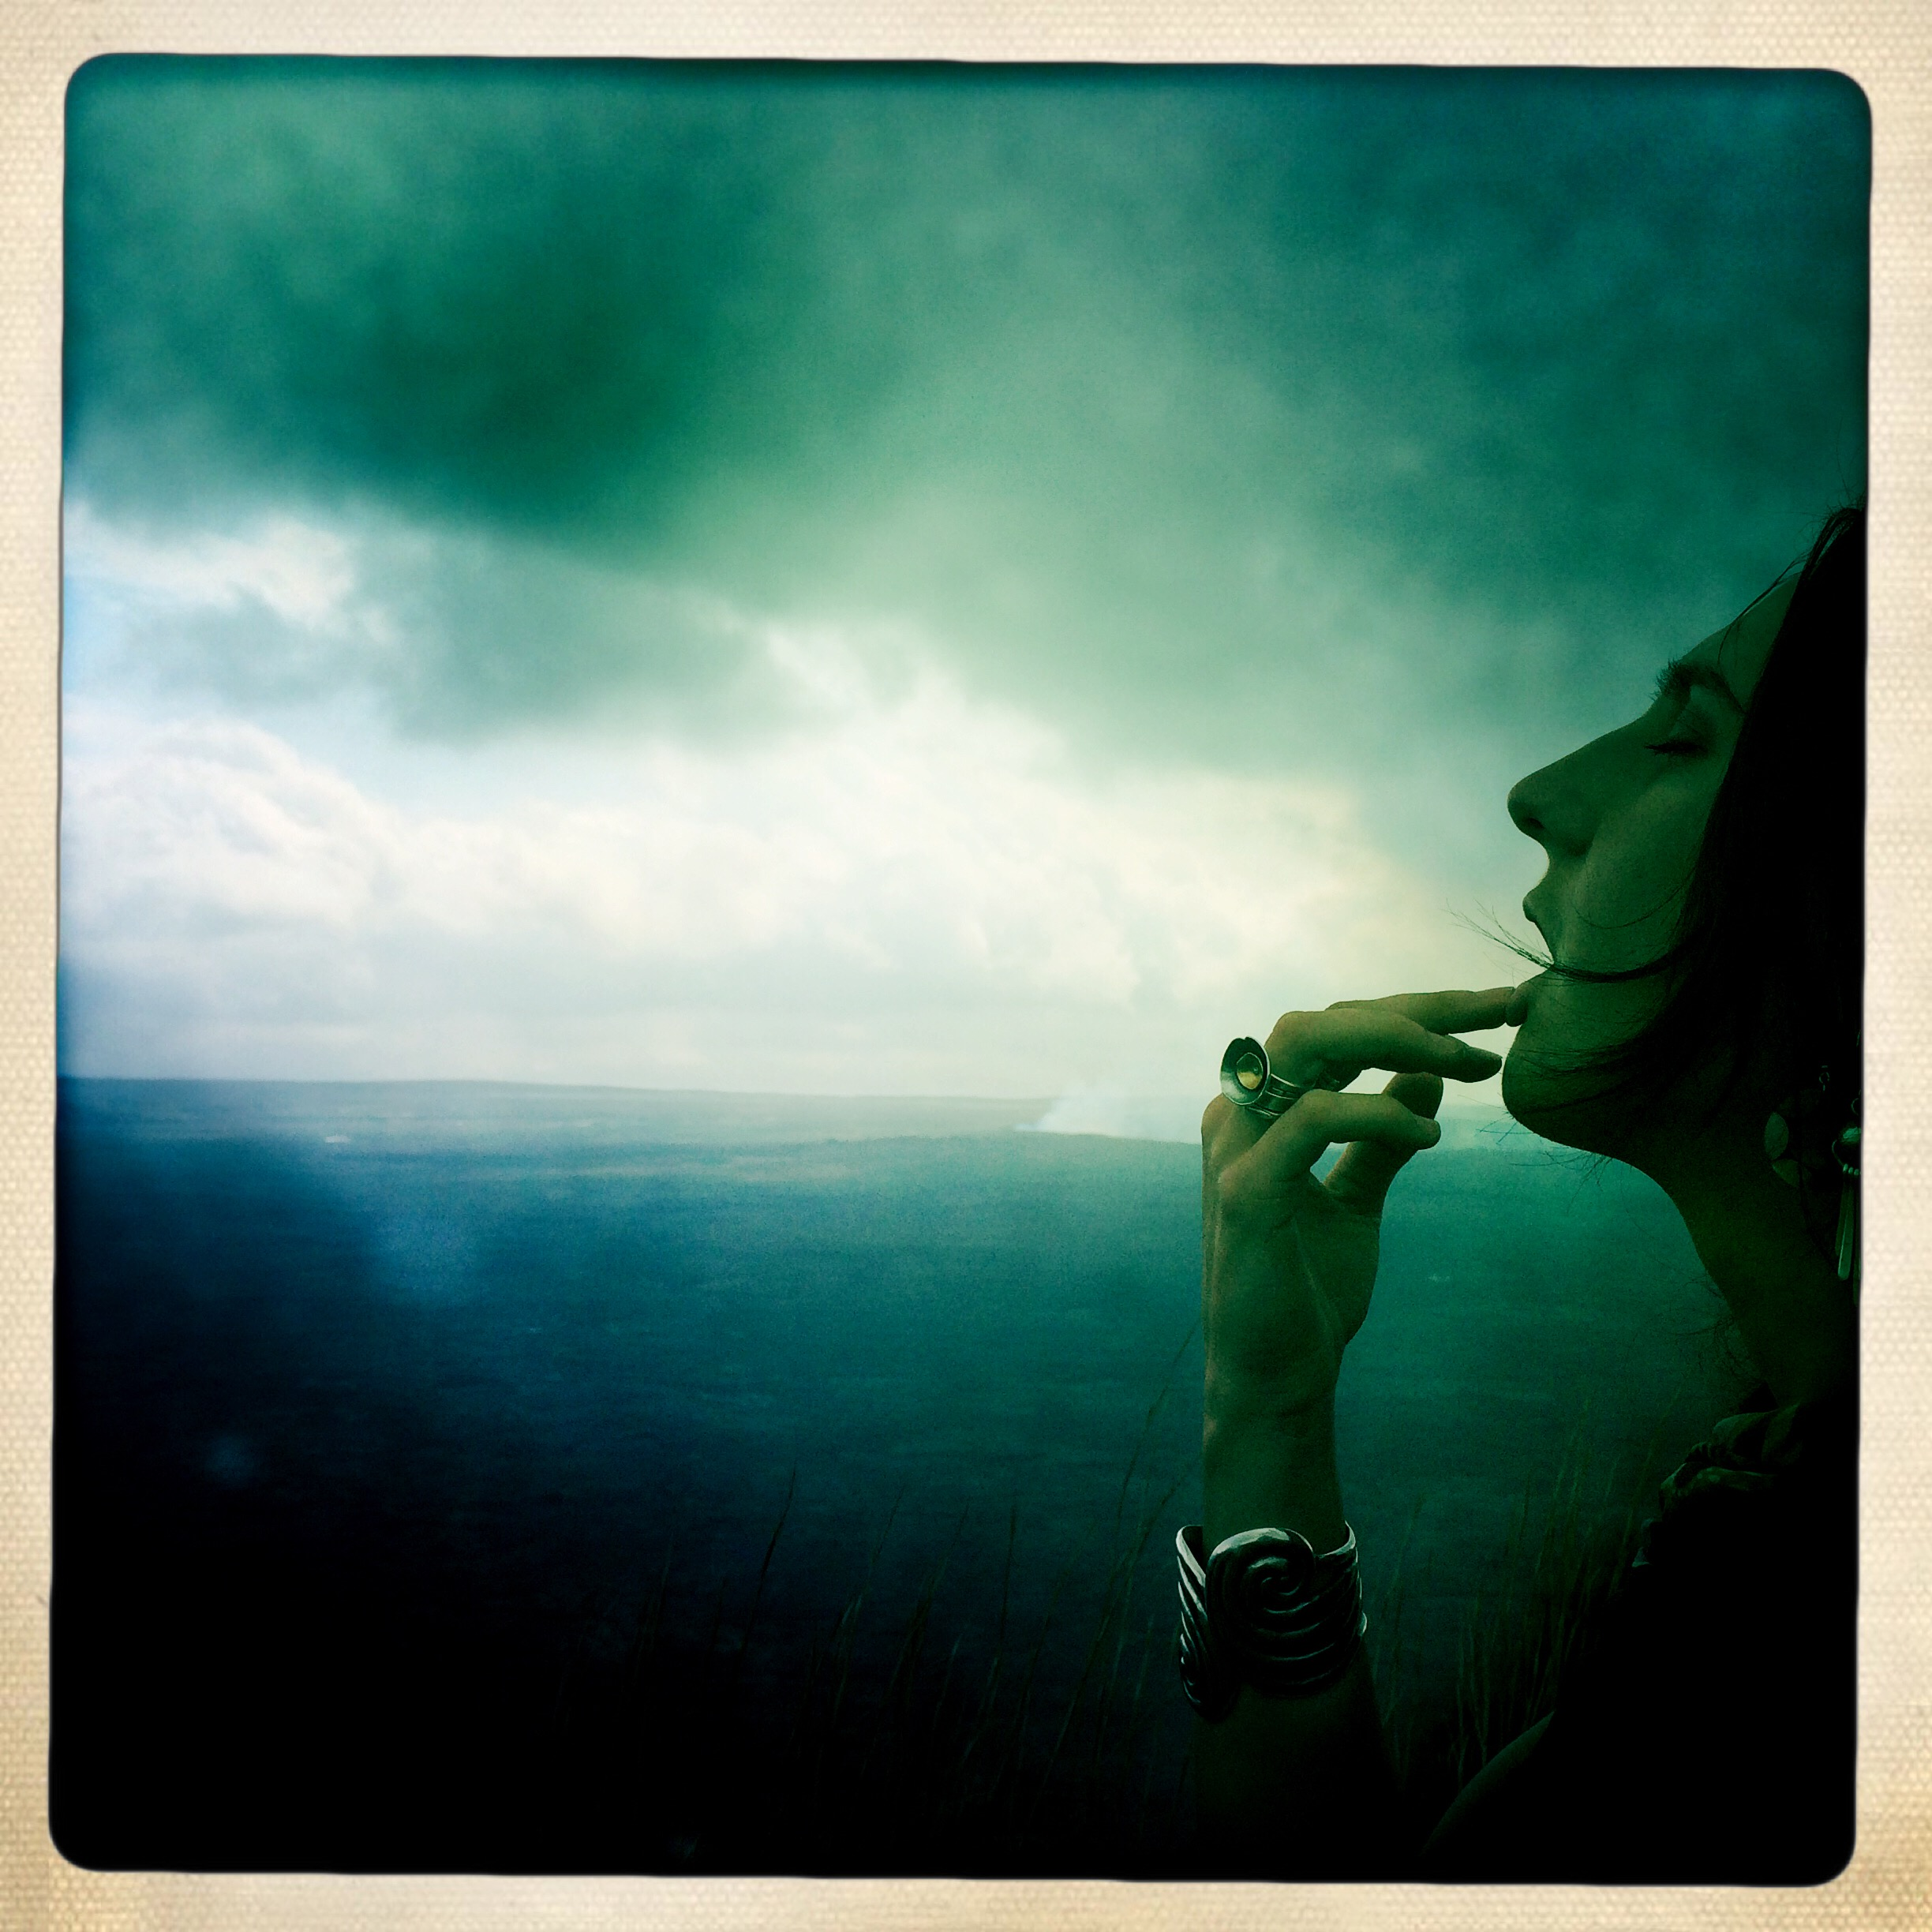 Oh For A Muse of Fire   self-portrait on the edge of the Kilauea volcano Caldera   Hawaii, February 2015